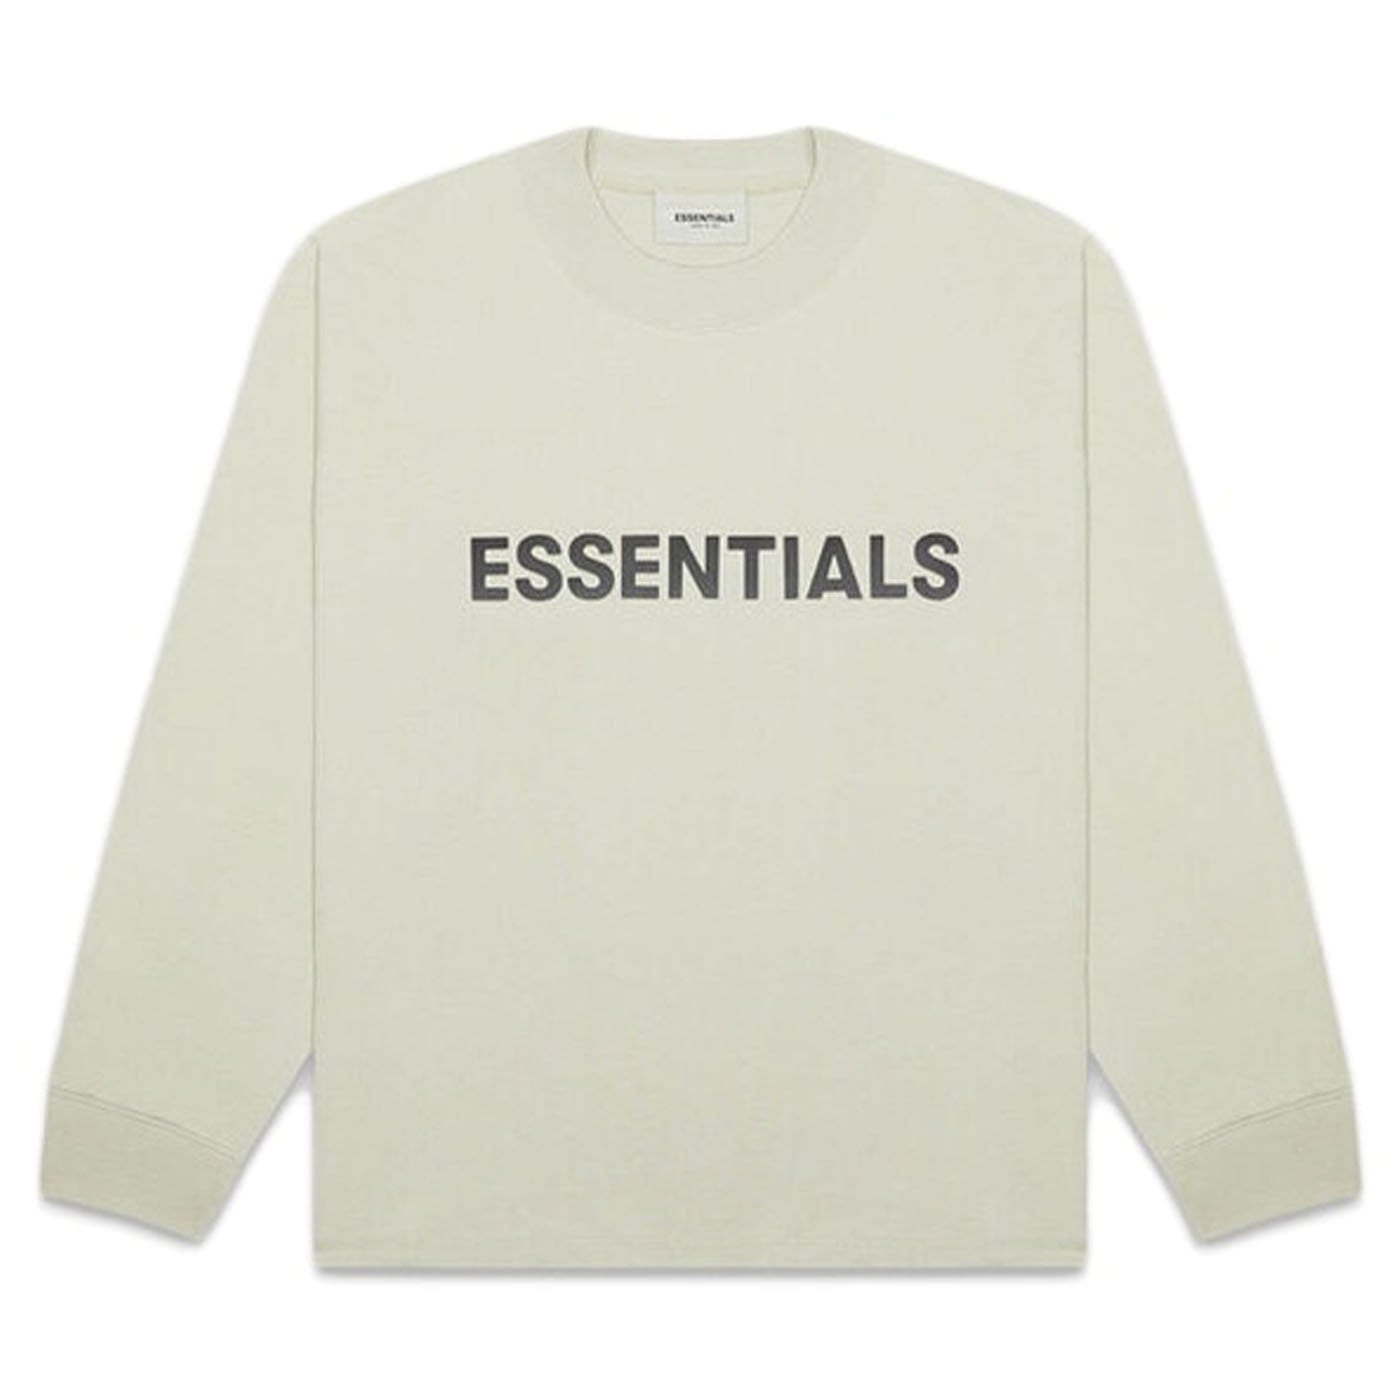 FEAR OF GOD ESSENTIALS 3D Silicon Applique Boxy Long Sleeve T-Shirt Alfalfa Sage - Kick Game